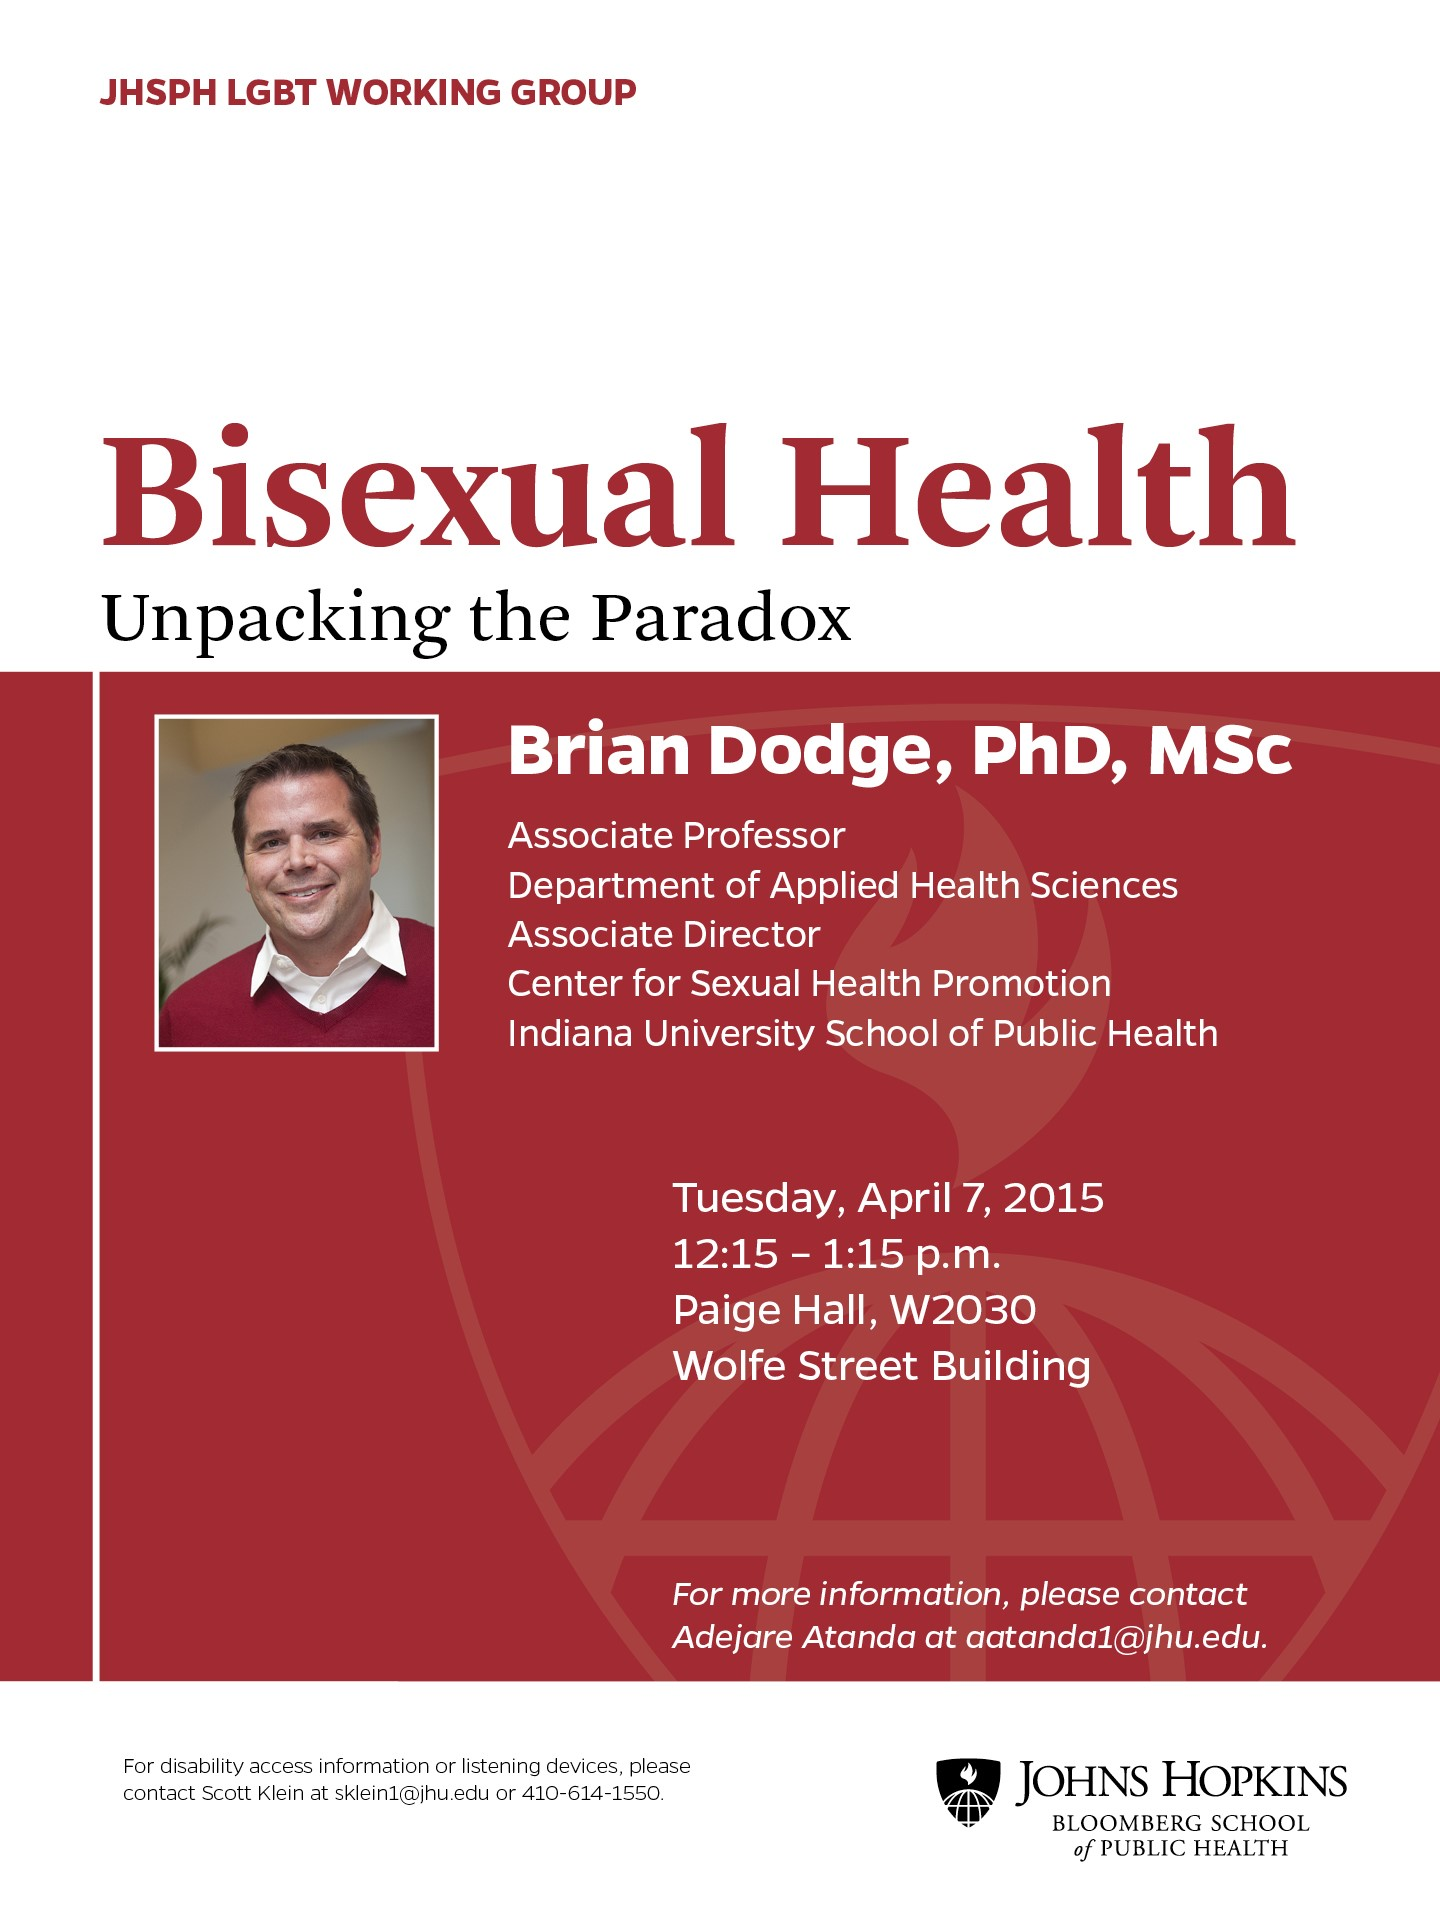 Photo of Dodge Bisexual Health Poster